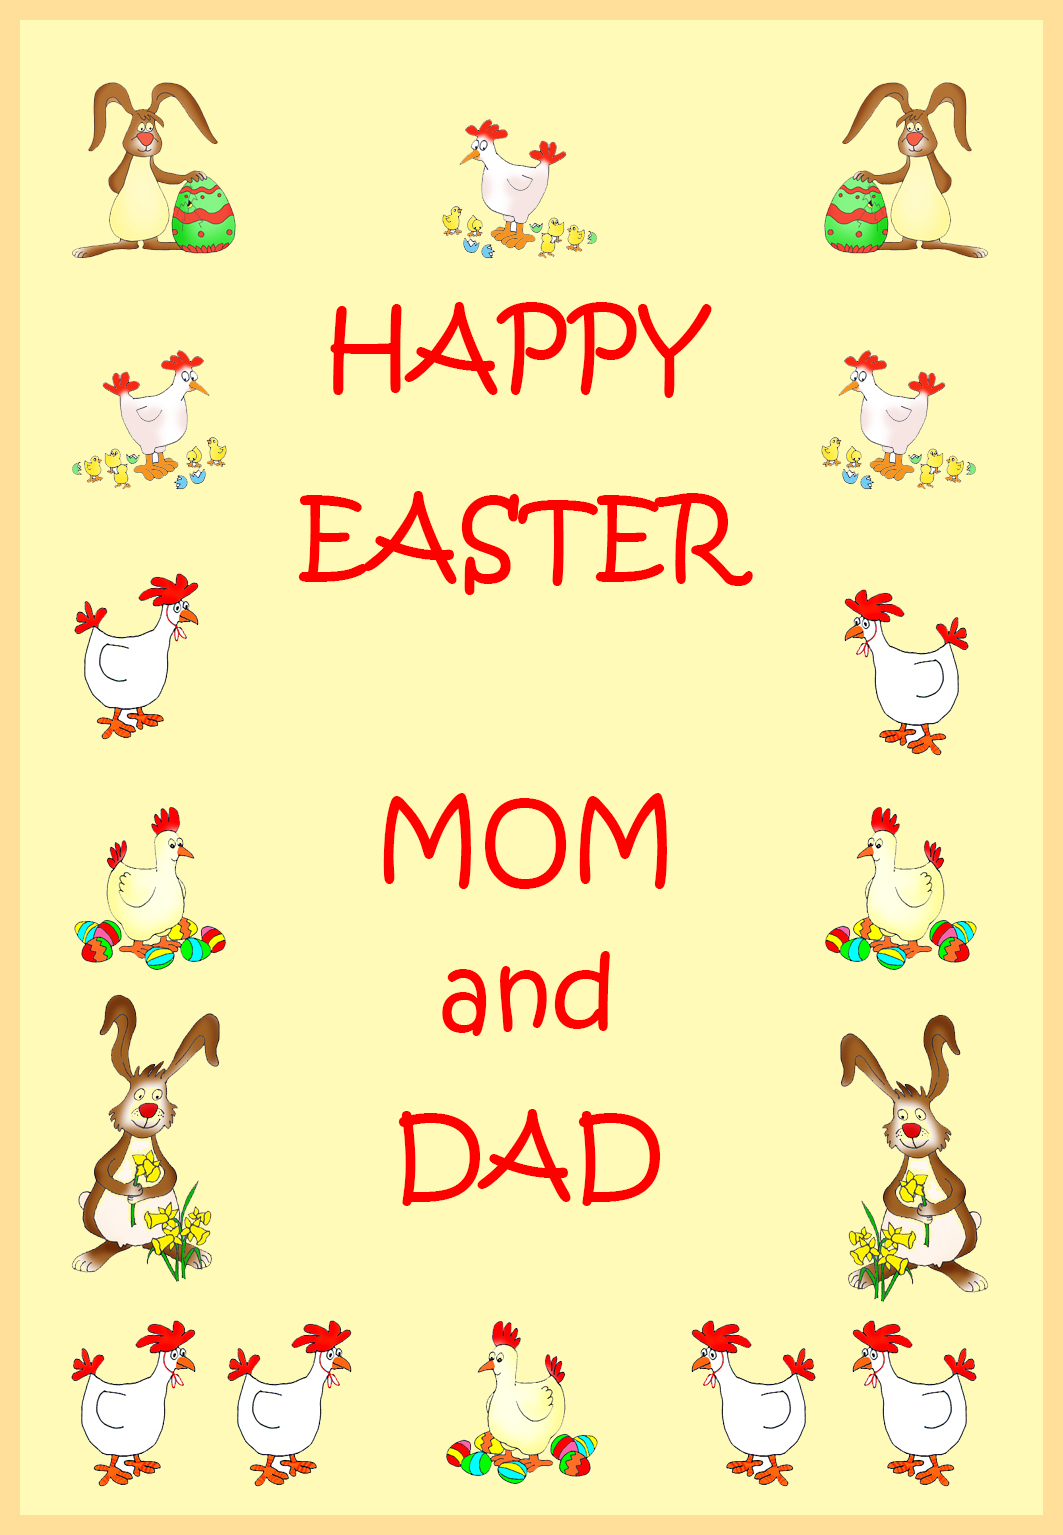 happy Easter to mom and dad